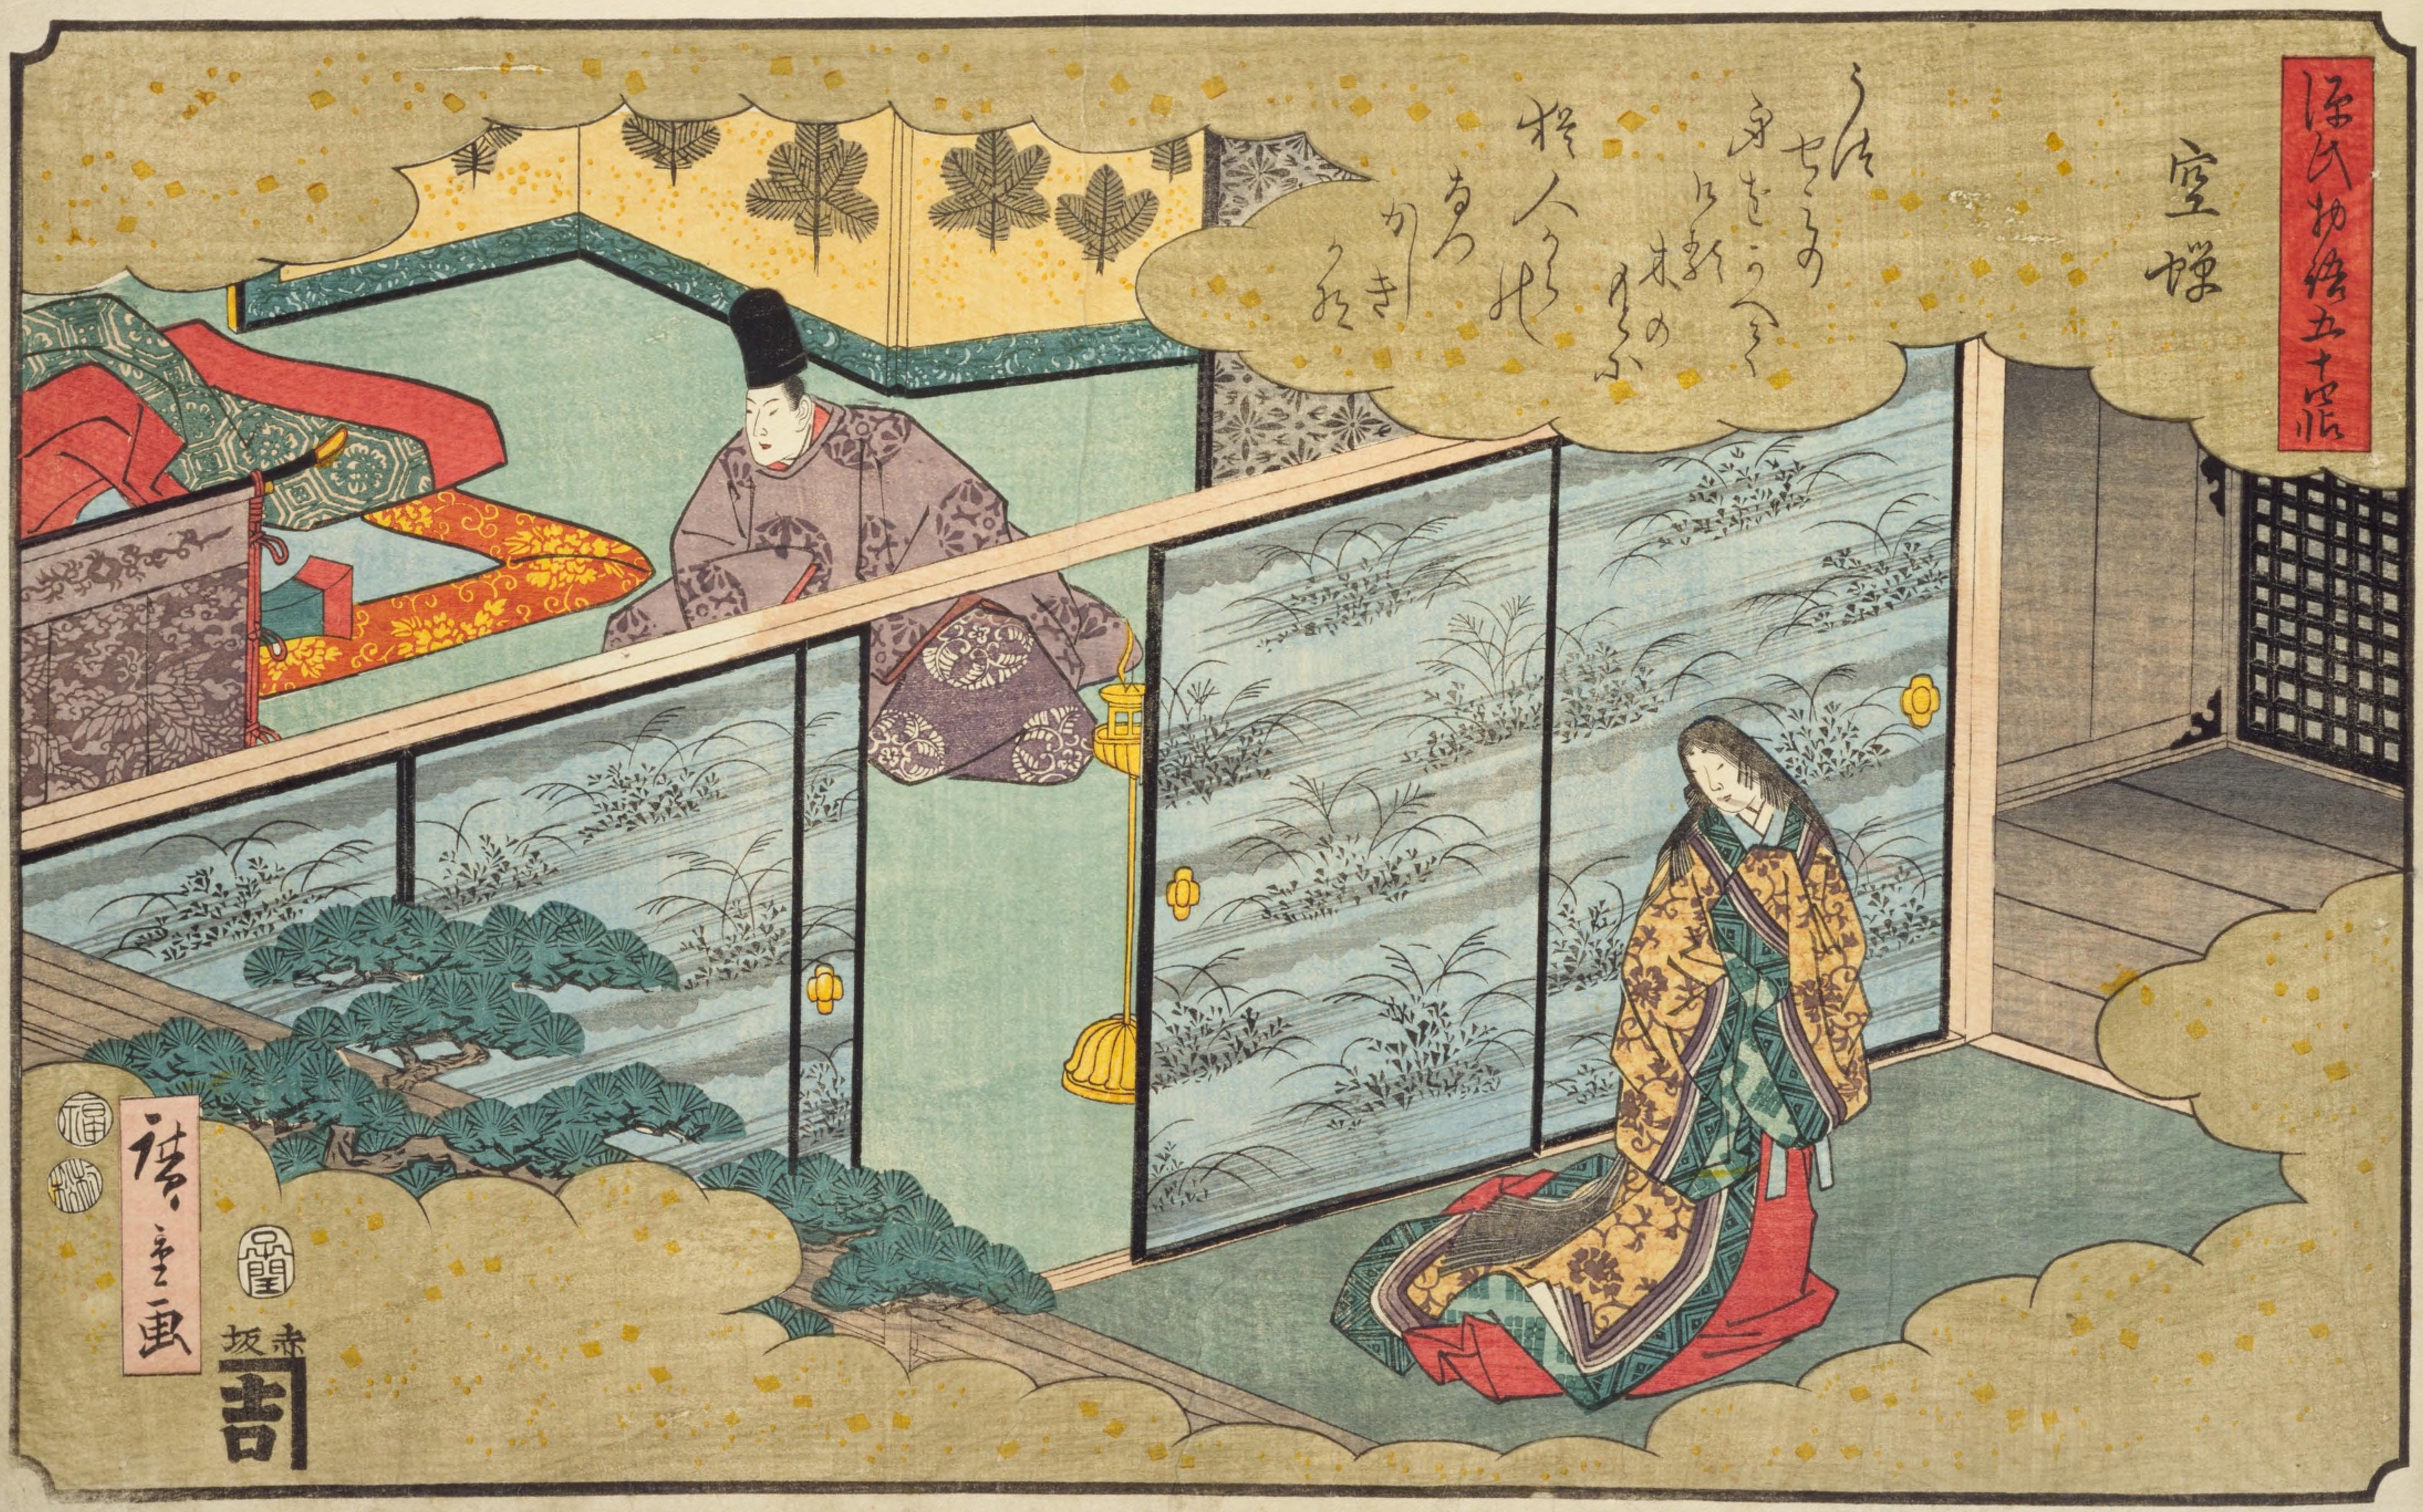 an overview of the tale of genji by murasaki shikibu Murasaki shikibu (ca 976-ca 1031) was a japanese writer of the late heian period her the tale of genji, the world's first psychological novel, is one of the.